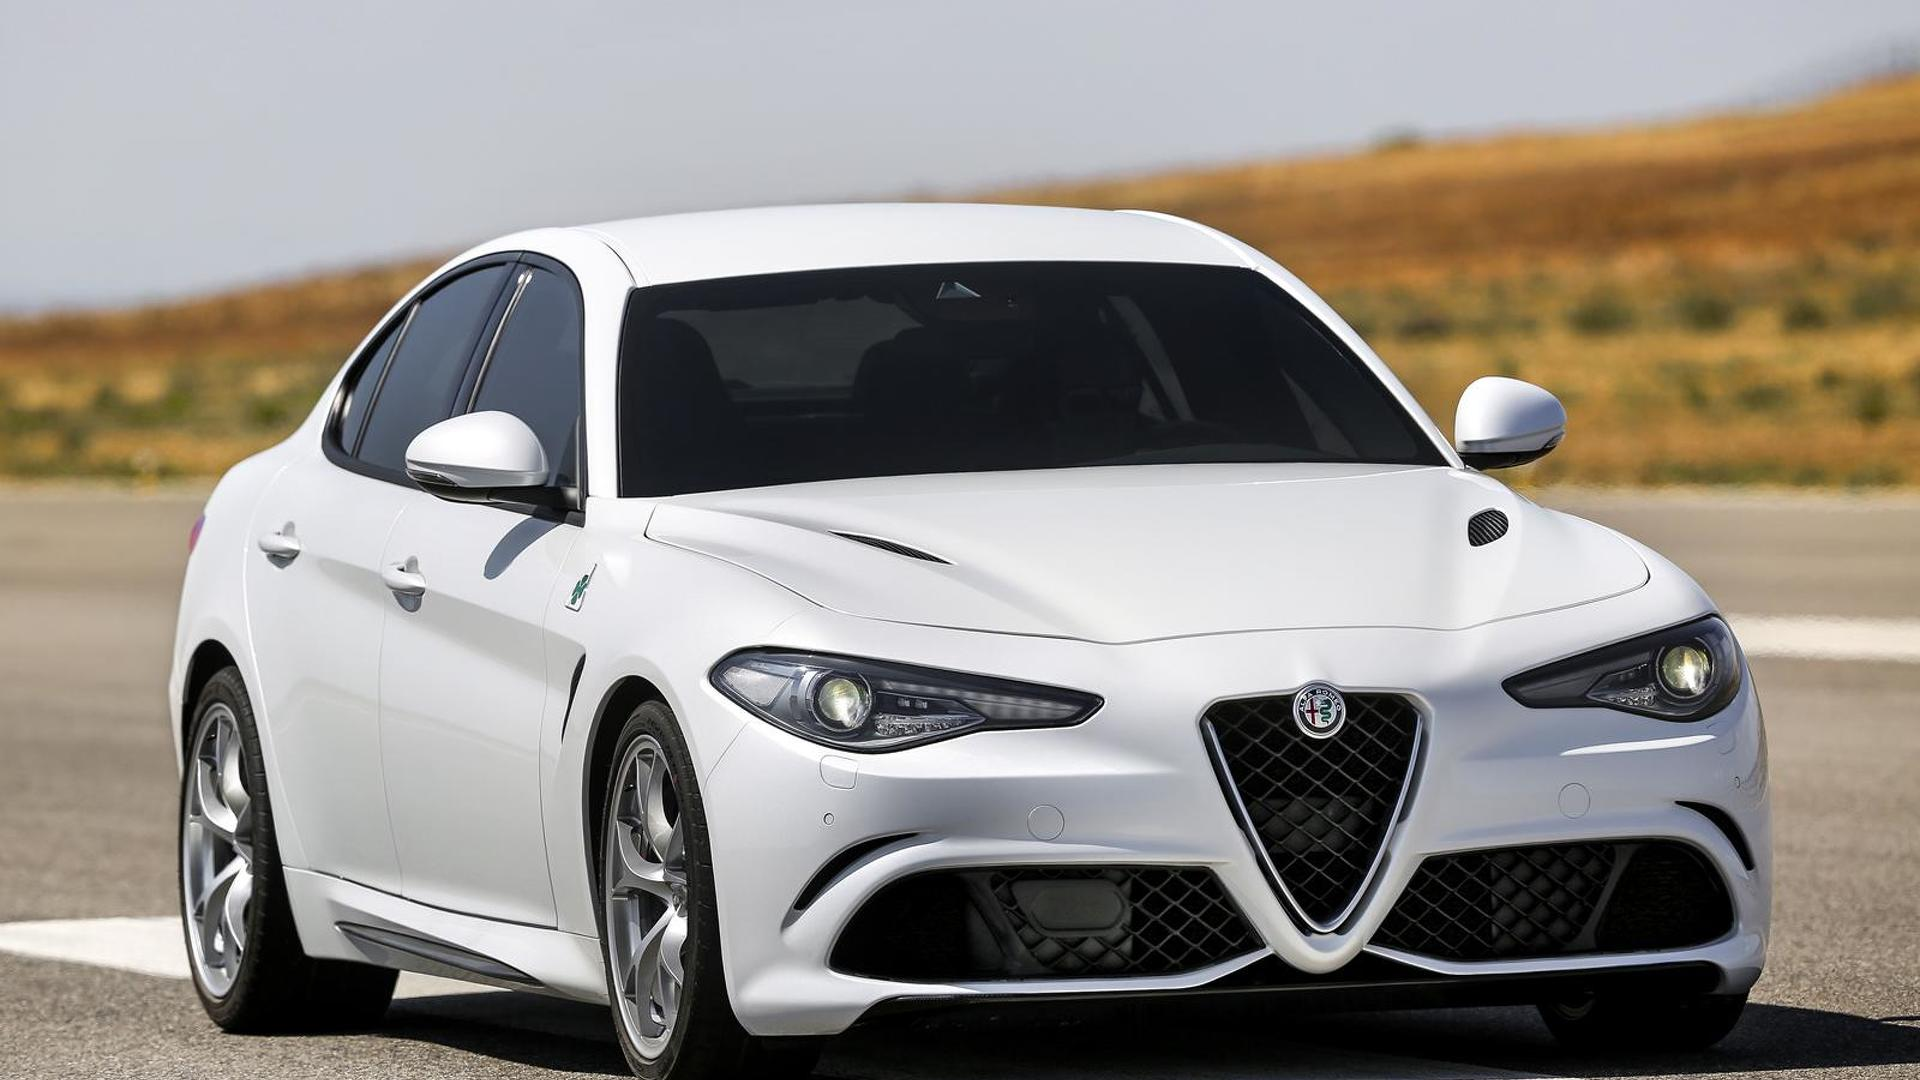 Alfa Romeo says Giulia design was inspired by the 156, not the